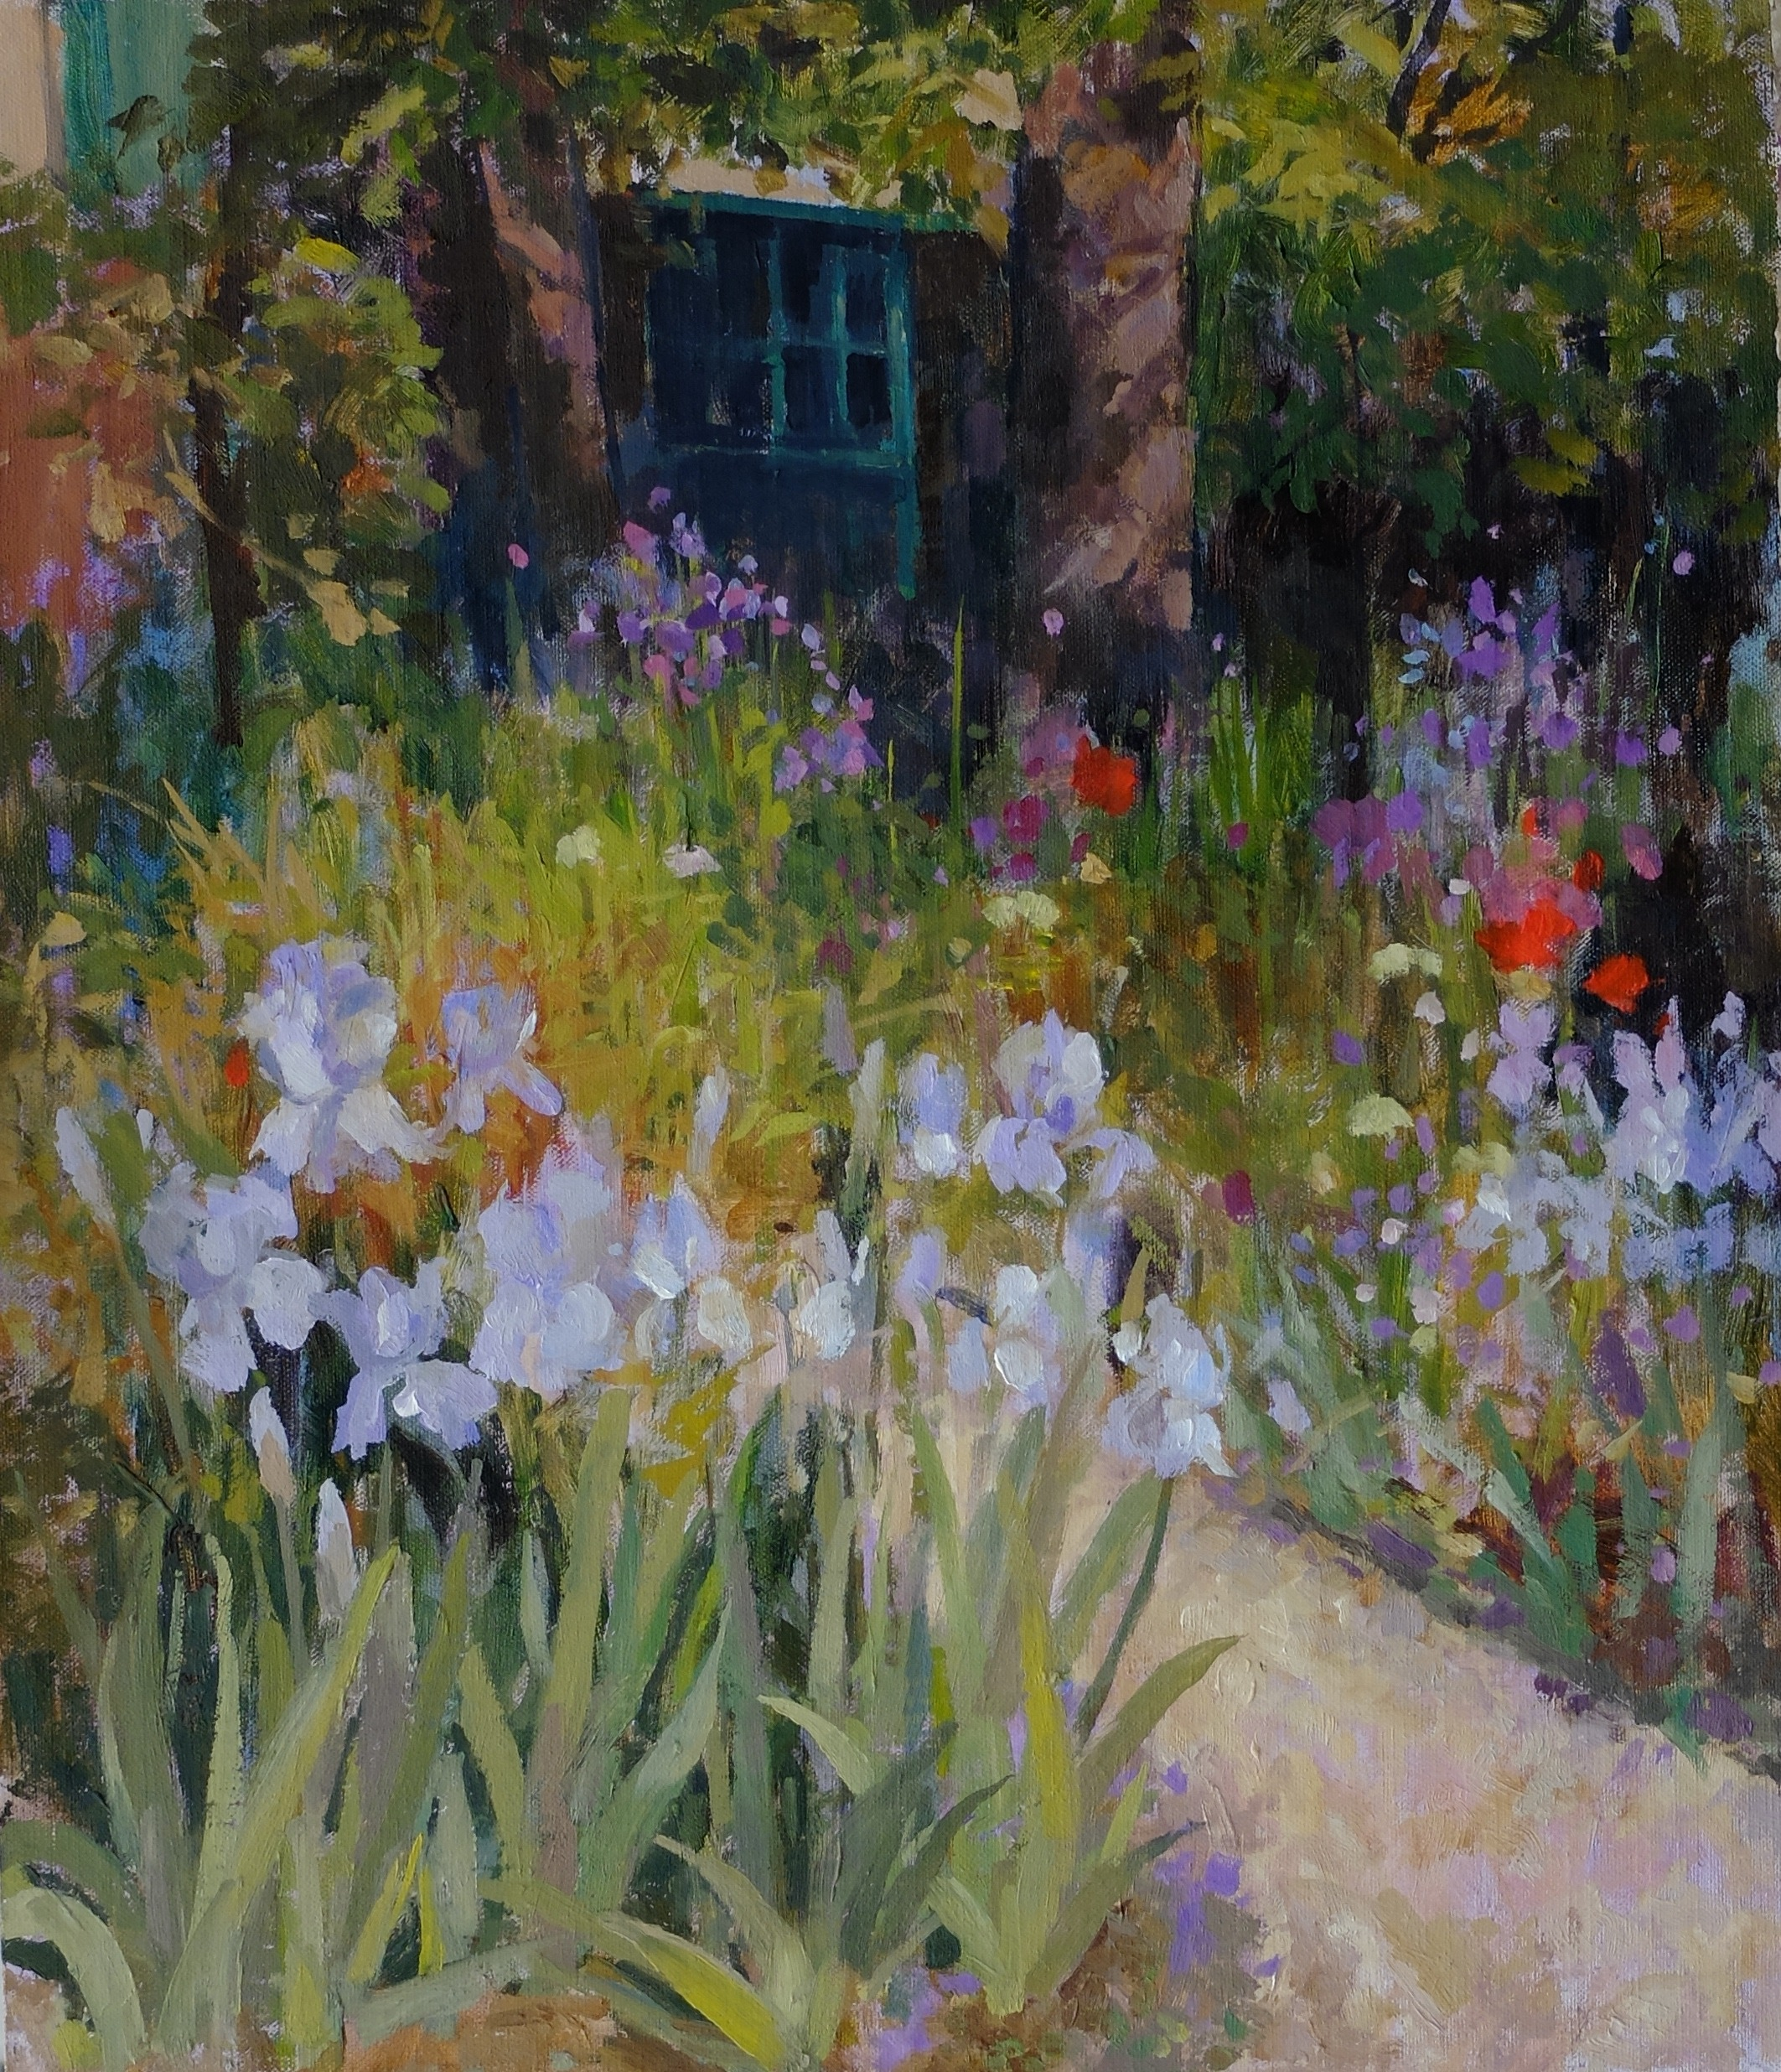 Spring Exhibition of Gallery Artists